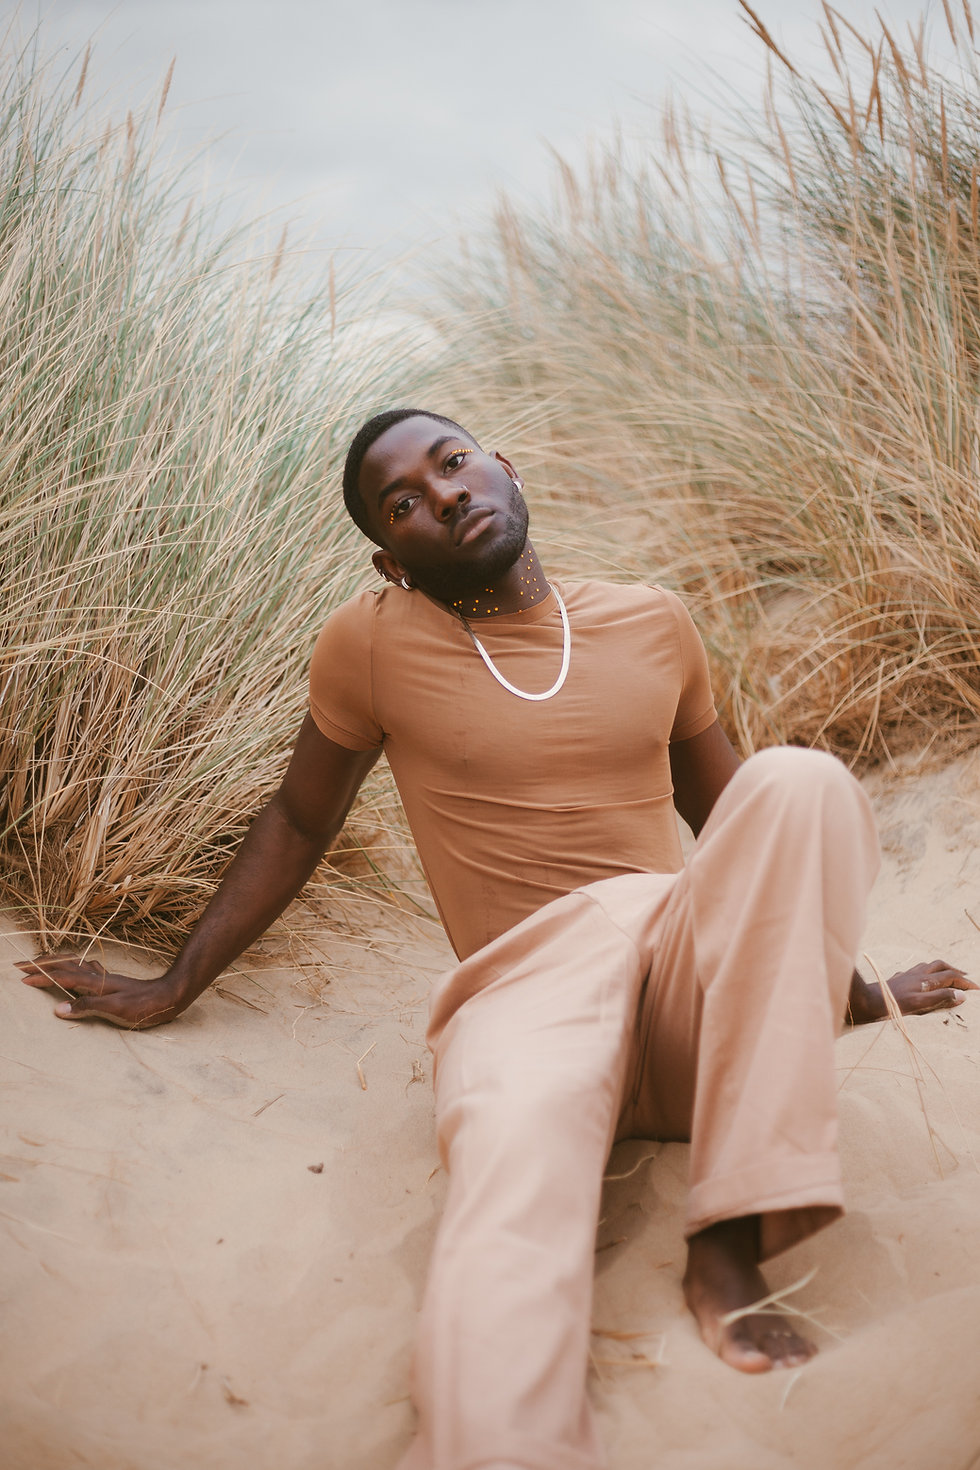 A man sitting on a sandy beach wearing brown clothes